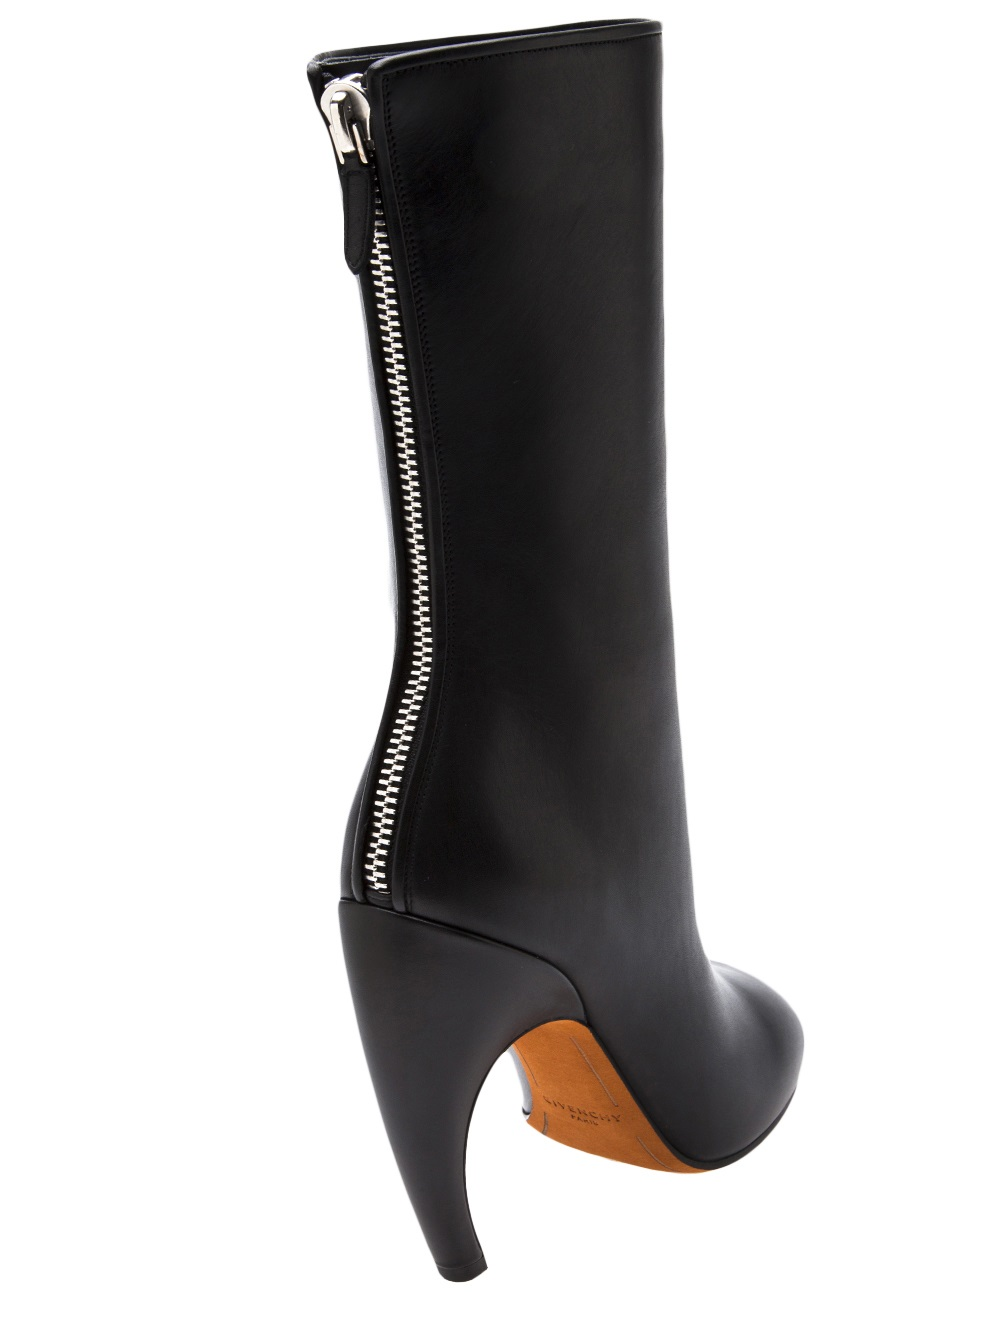 Lyst - Givenchy Curved Heel Boot in Black cb0d29cbe